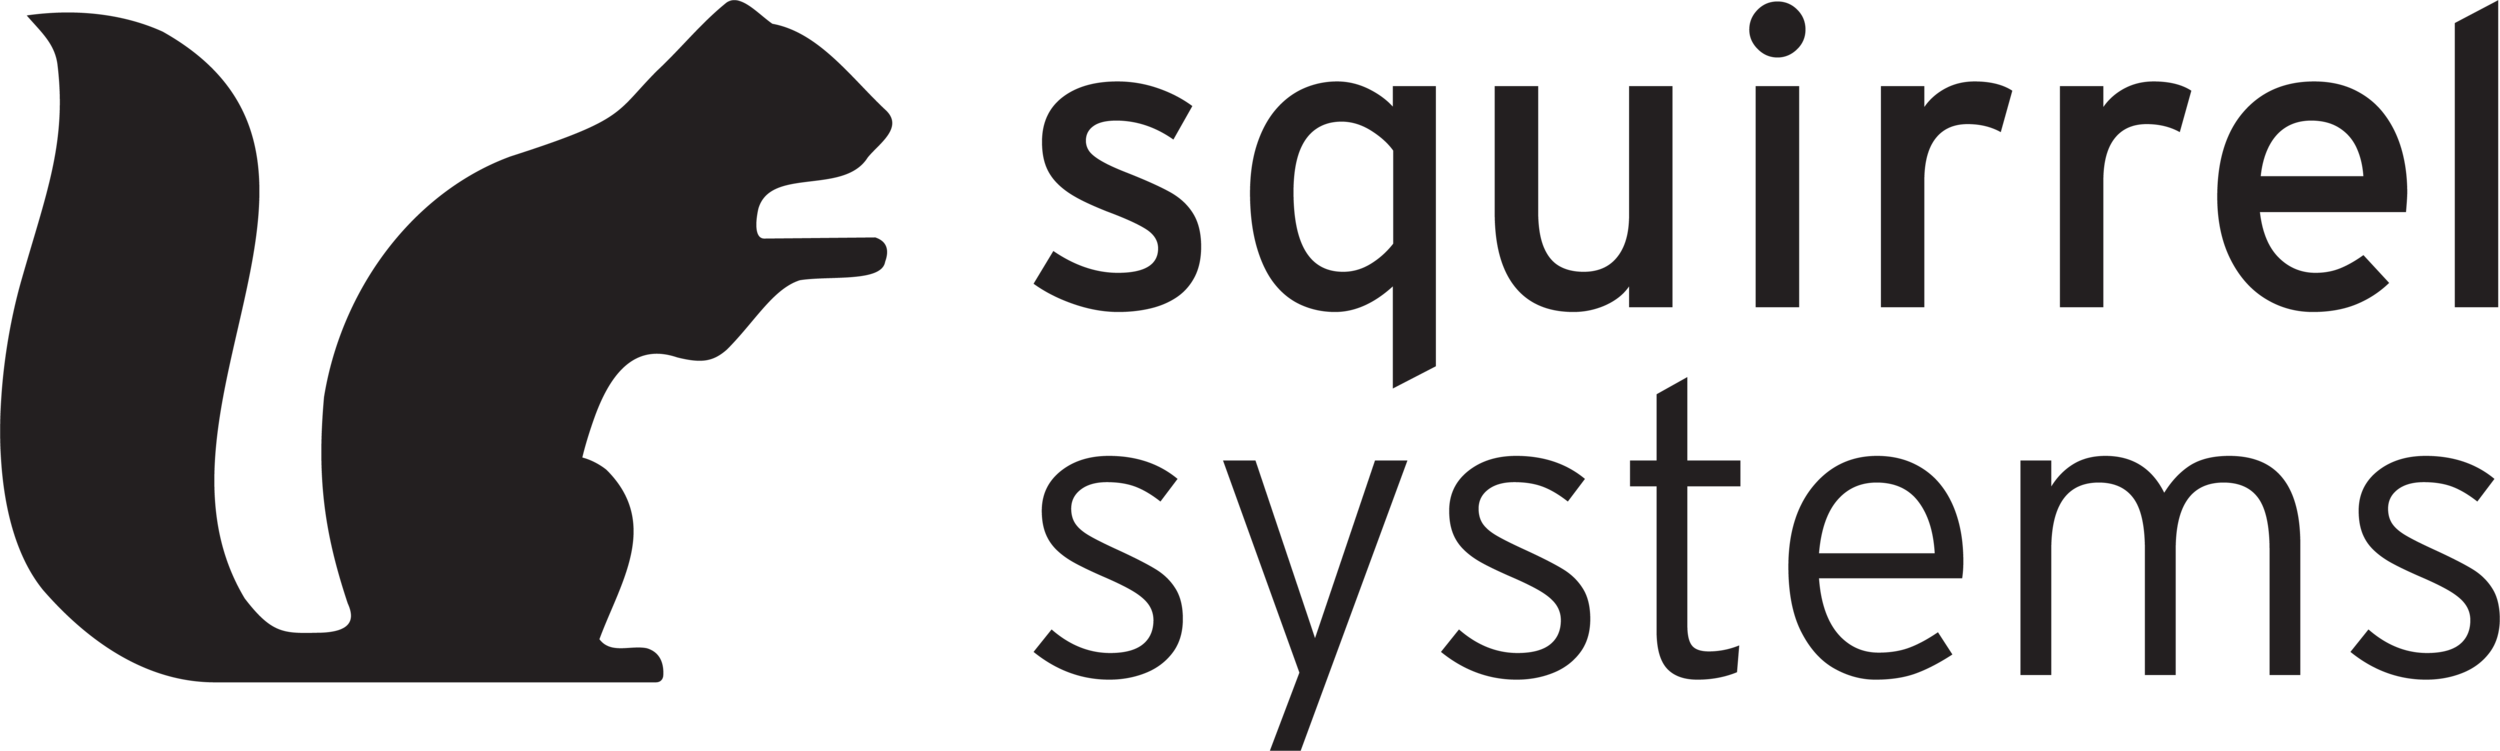 Squirrel Systems | POS Software and Hardware